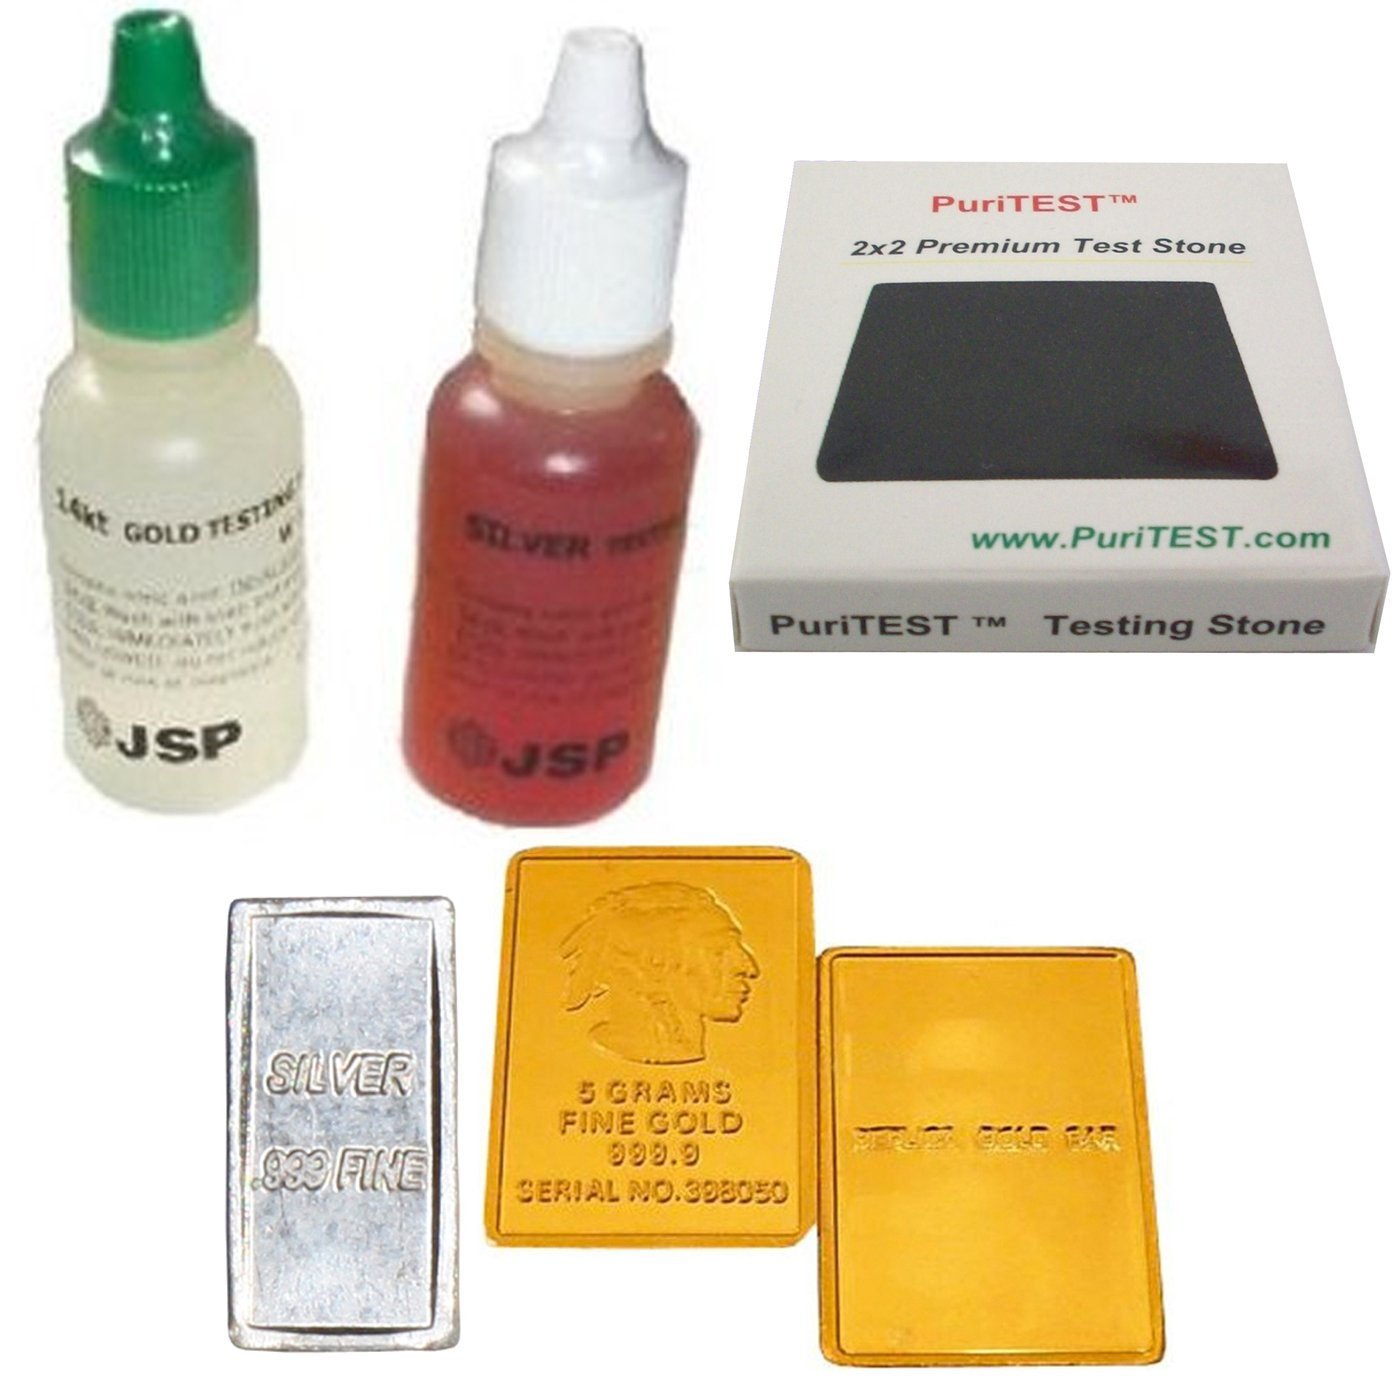 Gold Silver Test Acid Tester 14k Testing Stone Detect Metal 999 Sterling Jewelry + FAKE Gold & REAL Silver Bar Samples